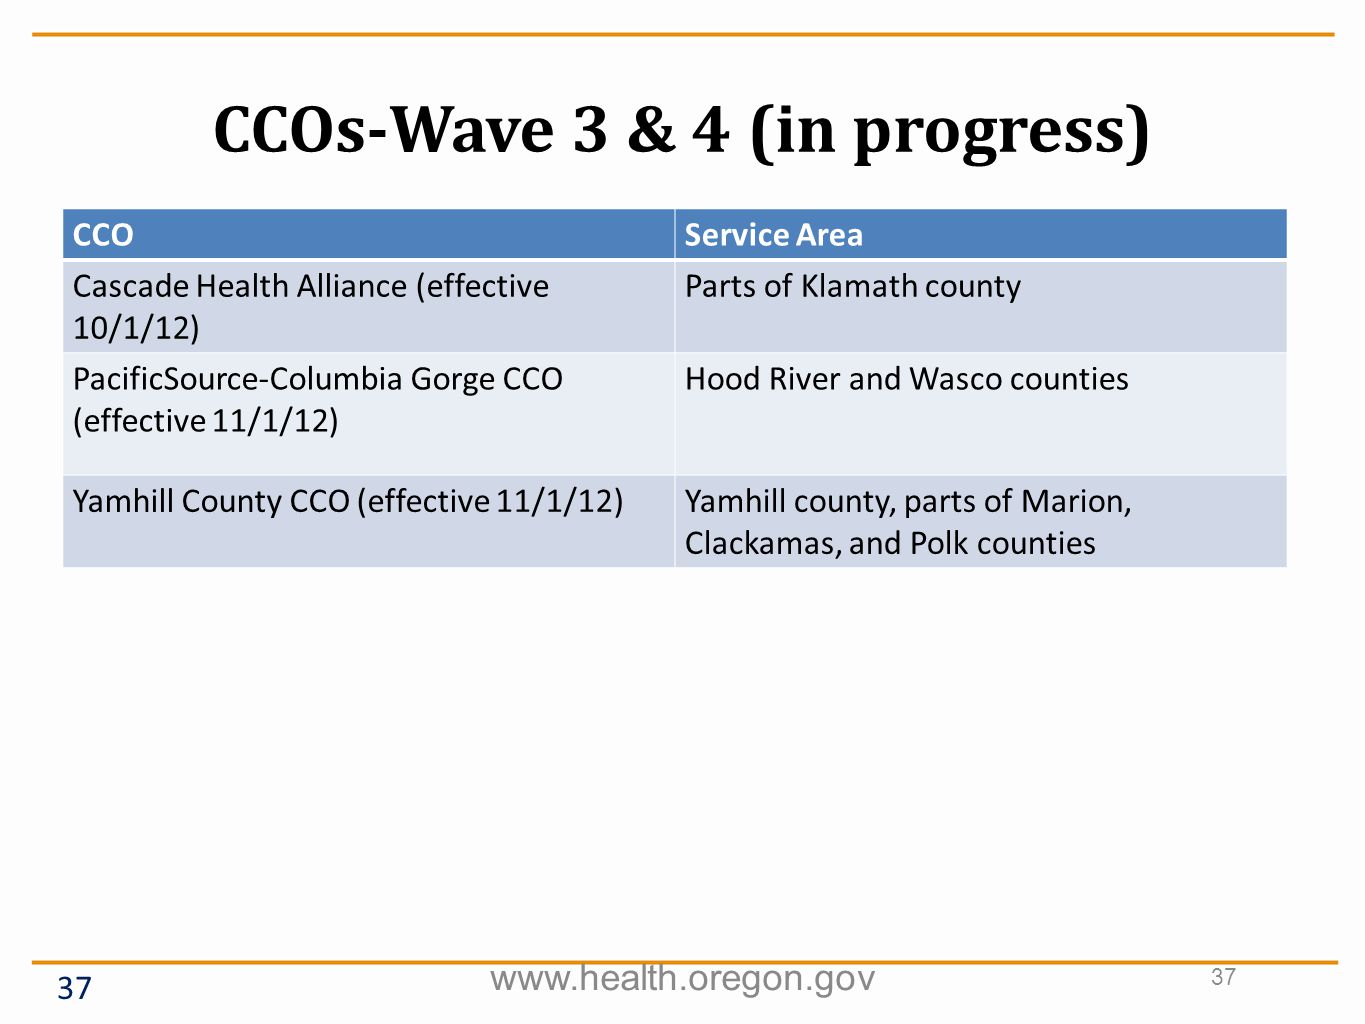 CCOs-Wave 3 & 4 (in progress) www.health.oregon.gov 37 CCOService Area Cascade Health Alliance (effective 10/1/12) Parts of Klamath county PacificSource-Columbia Gorge CCO (effective 11/1/12) Hood River and Wasco counties Yamhill County CCO (effective 11/1/12)Yamhill county, parts of Marion, Clackamas, and Polk counties